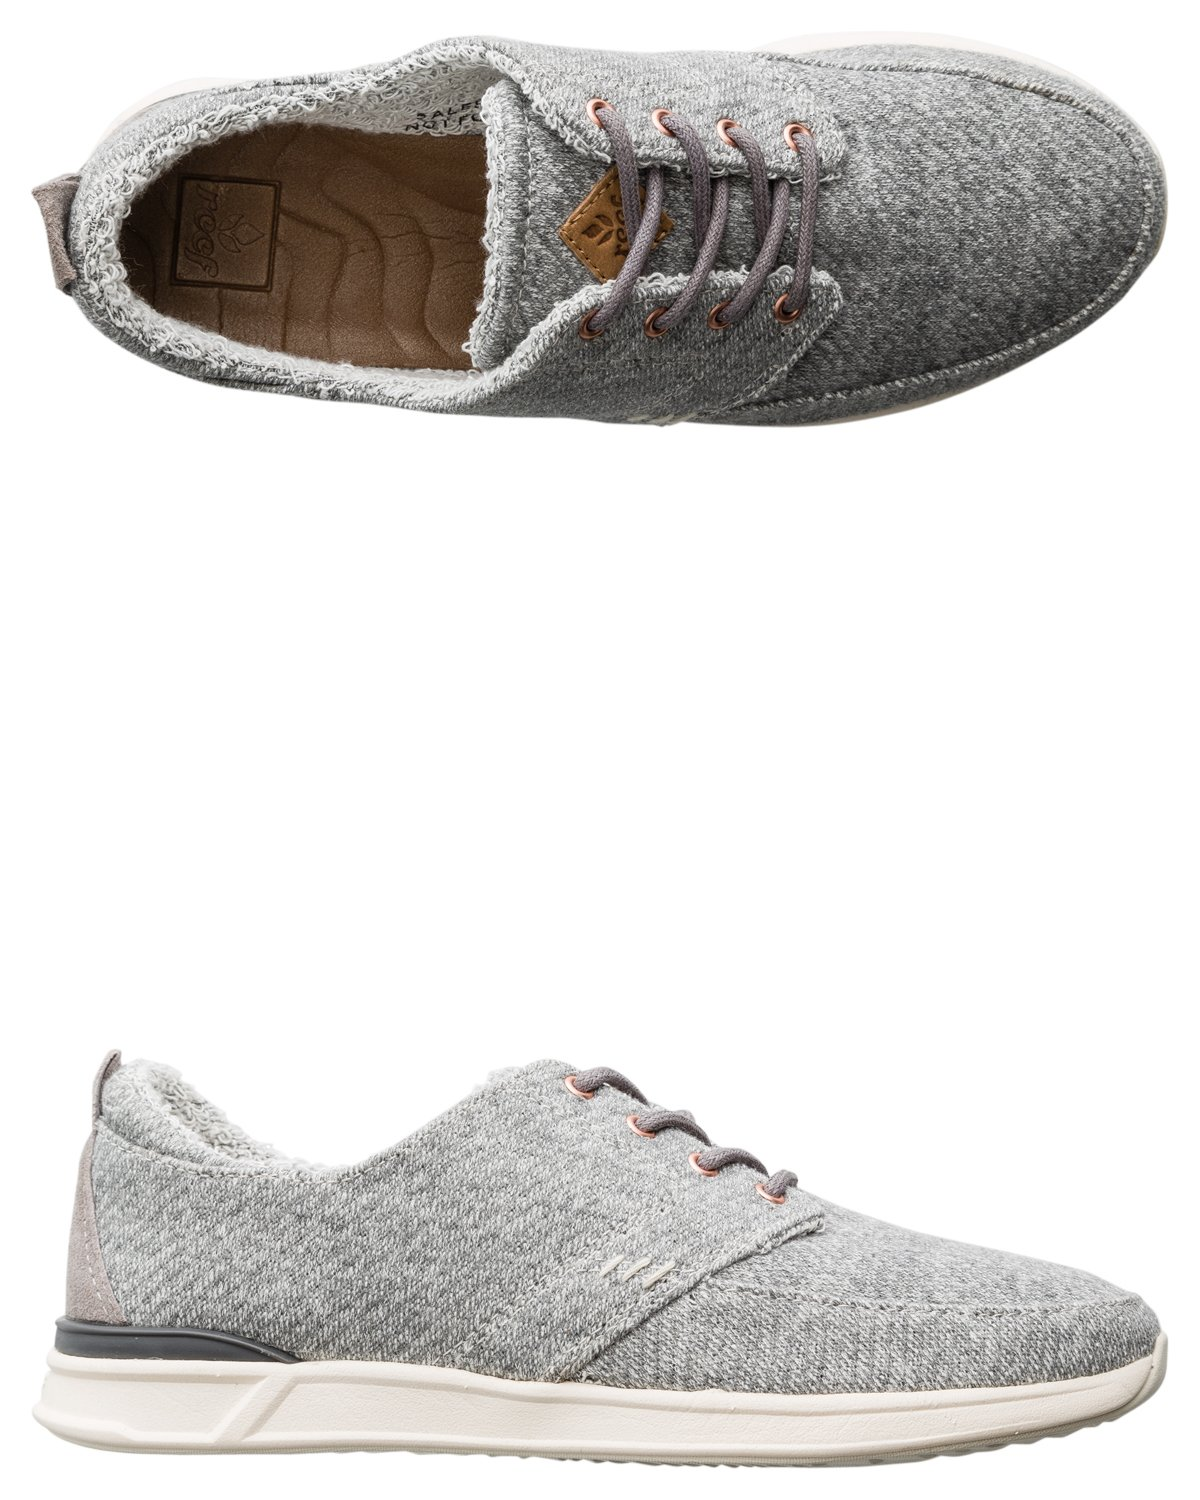 Reef Women's Rover Low TX Fashion Sneaker B017WTR62Q Medium Heather / 6 B(M) US|Grey Heather Medium ad19fd